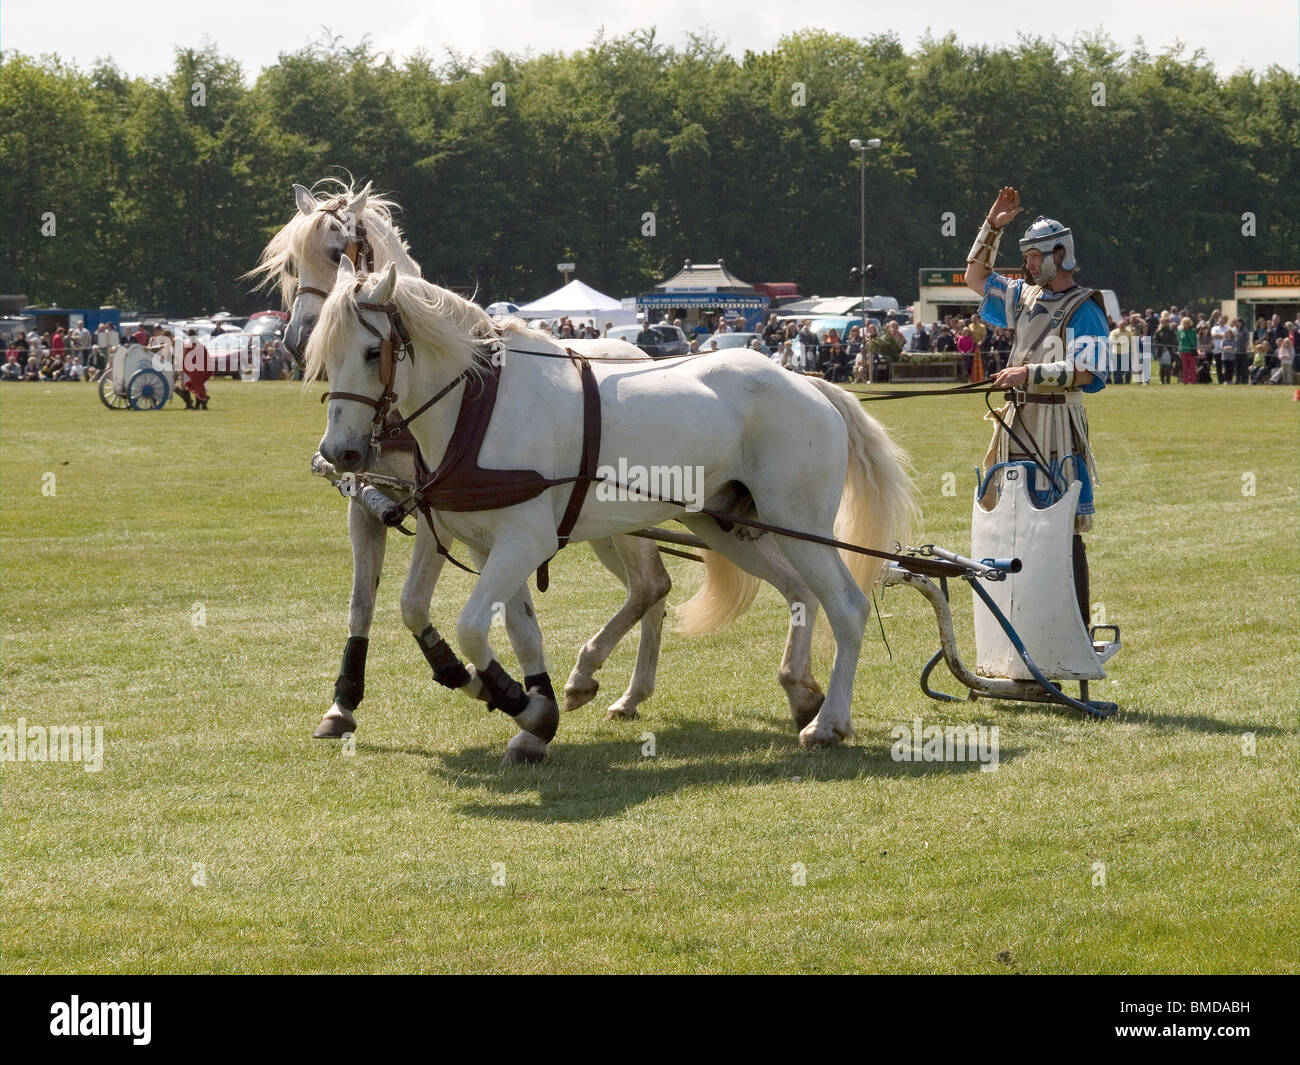 Stunt rider with two white horses in a demonstration of Roman Chariot Racing in a country fair North Yorkshire England - Stock Image